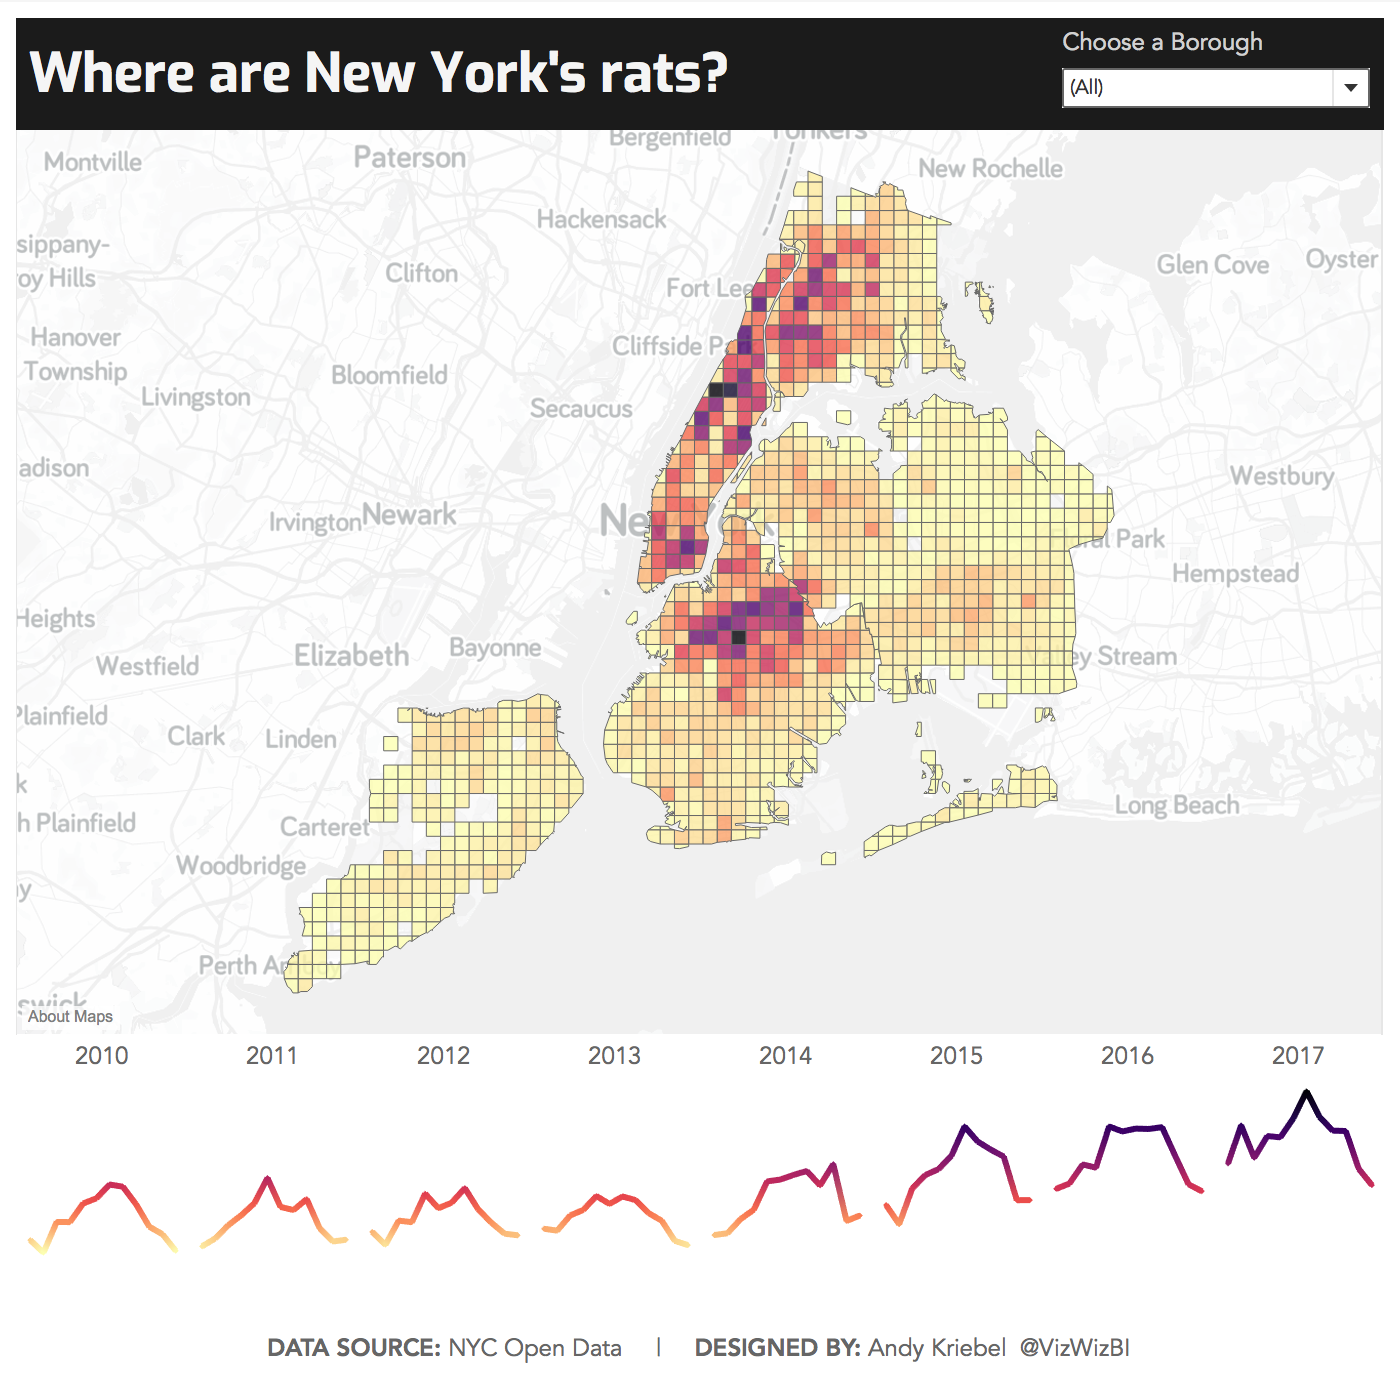 Makeover Monday: Where are New York's rats?